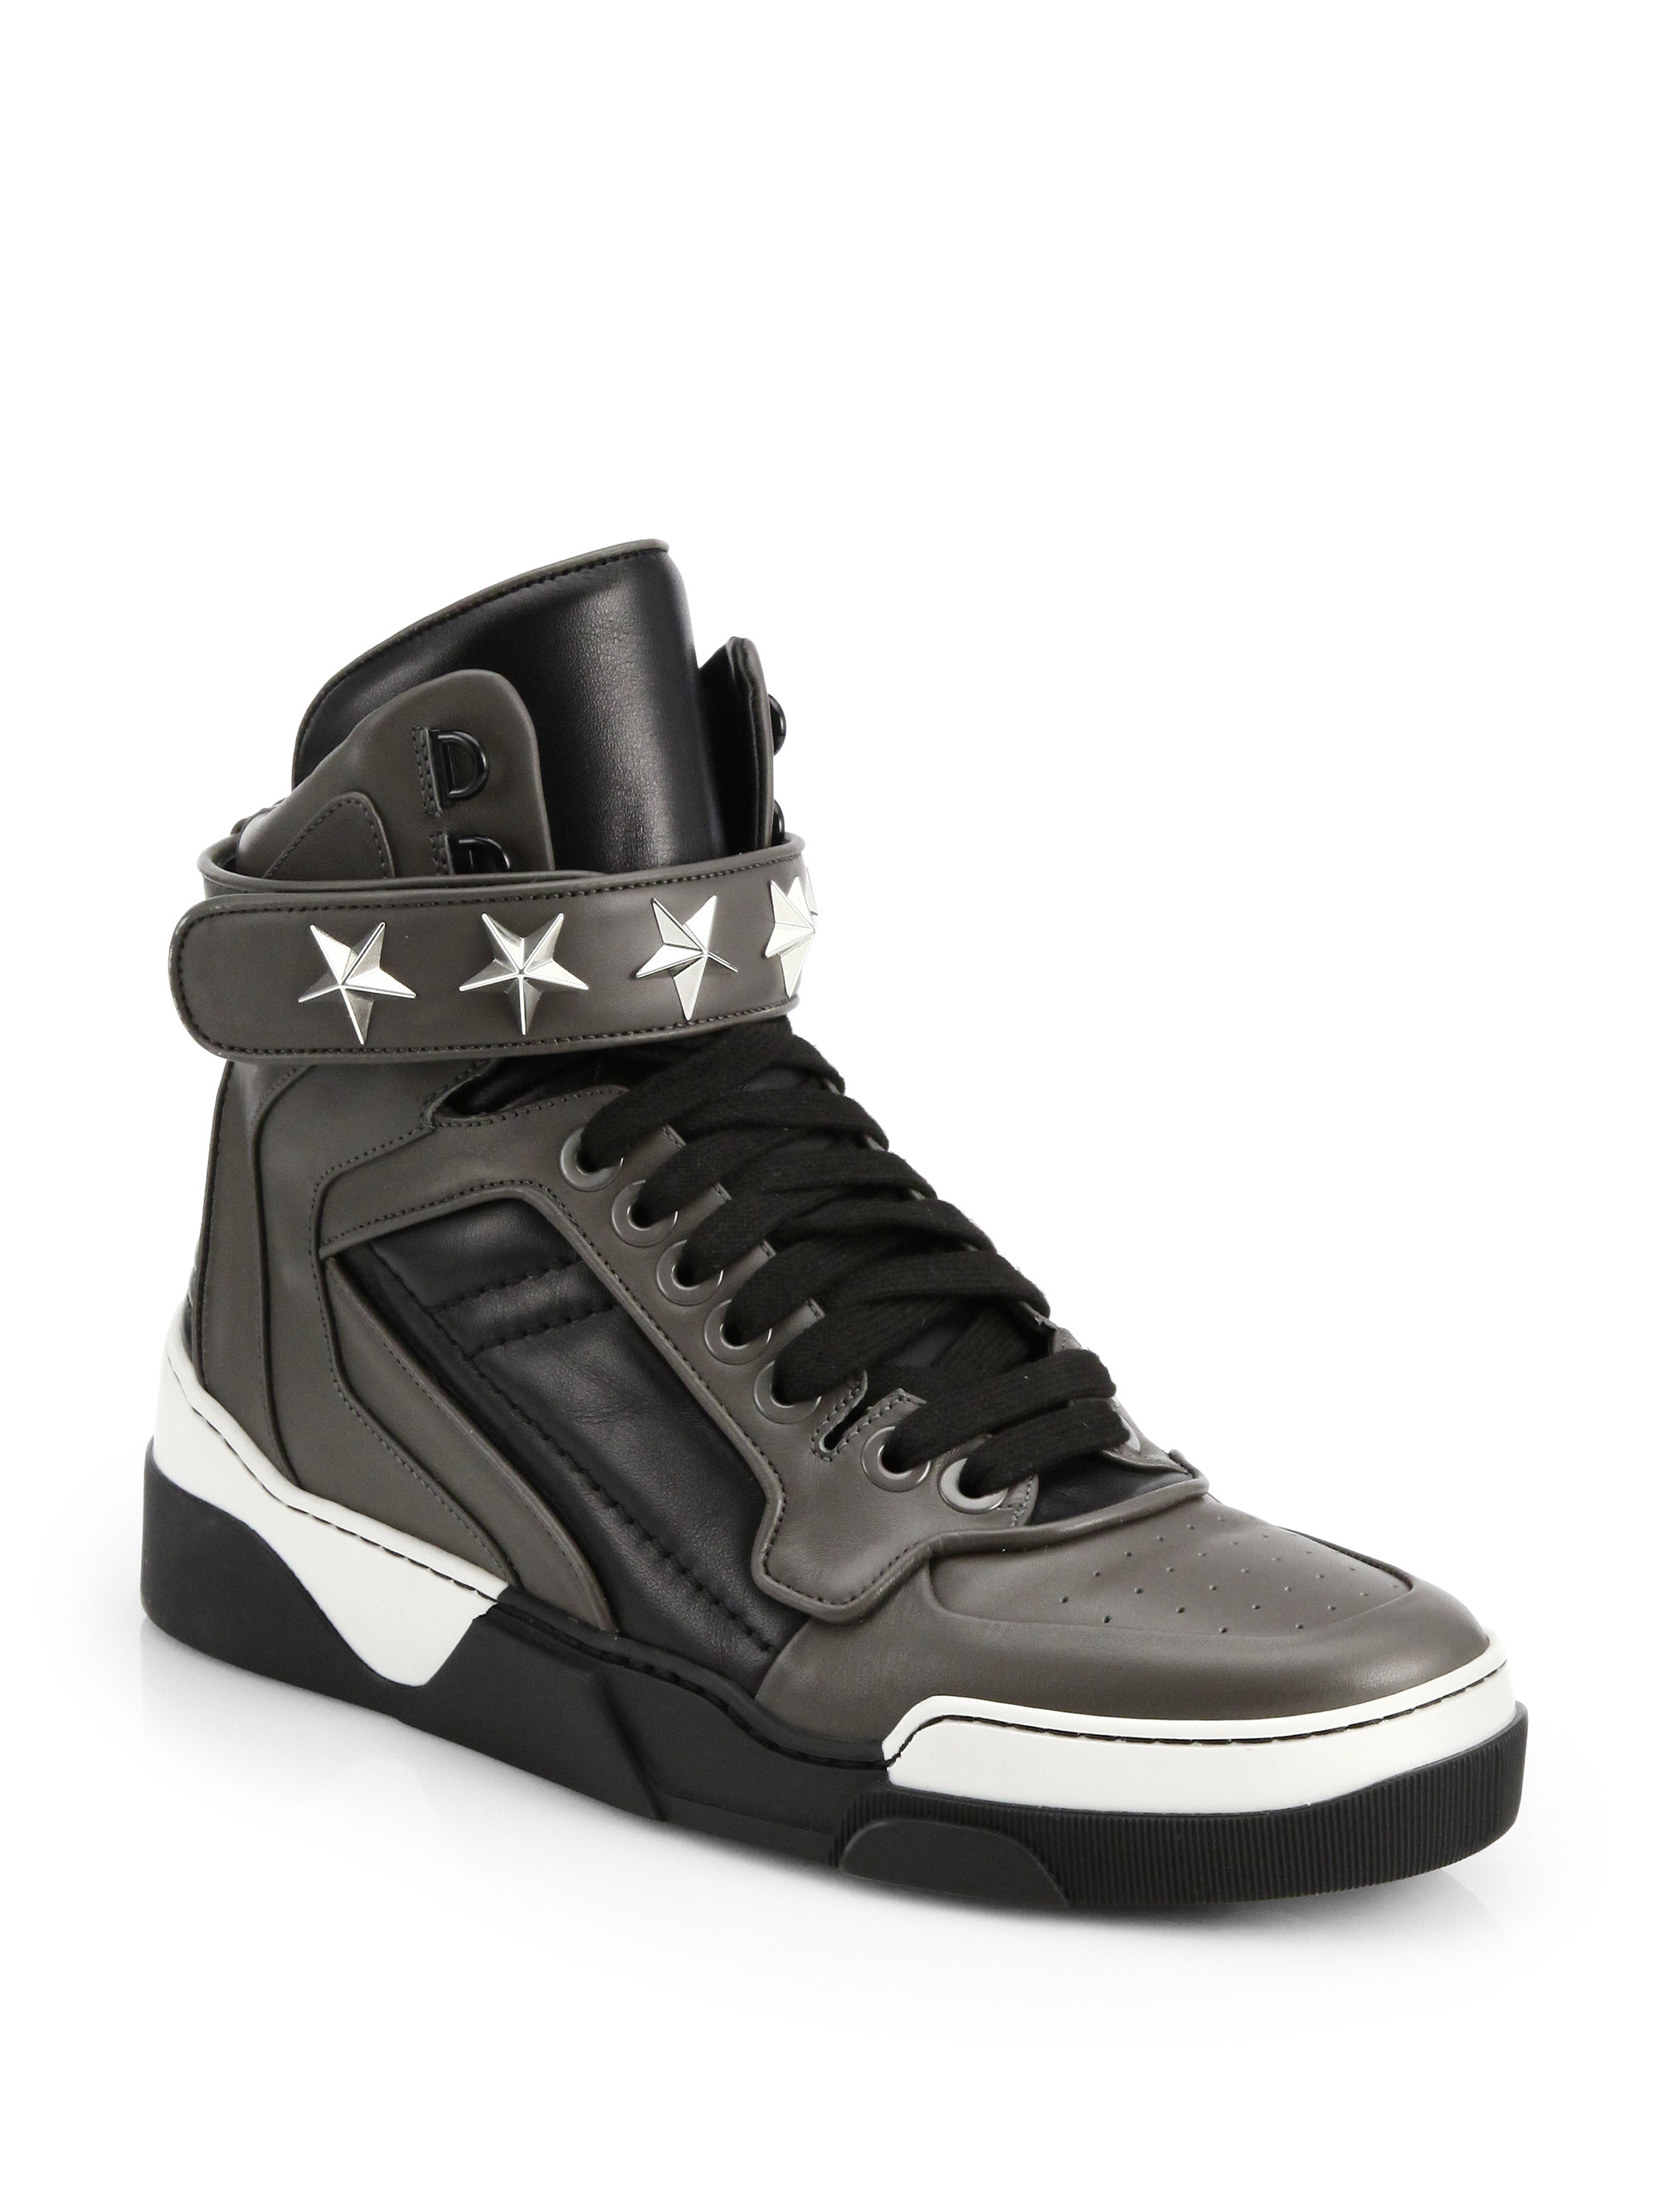 Lyst - Givenchy Tyson Leather High-top Sneakers in Gray for Men 6959f6e15